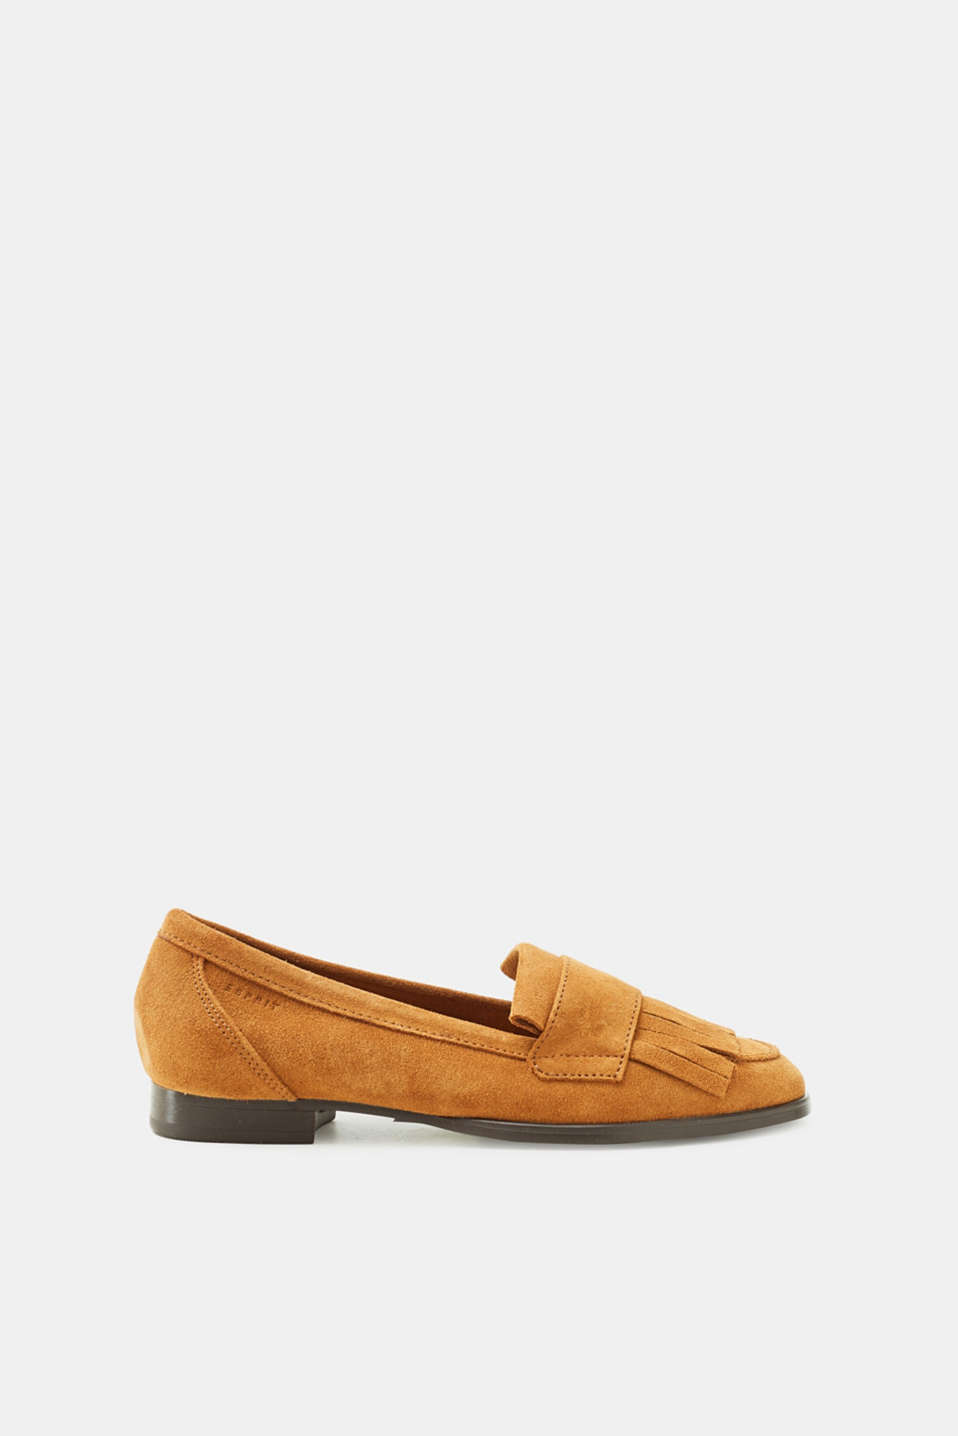 Esprit - Suede loafers with a front fringe